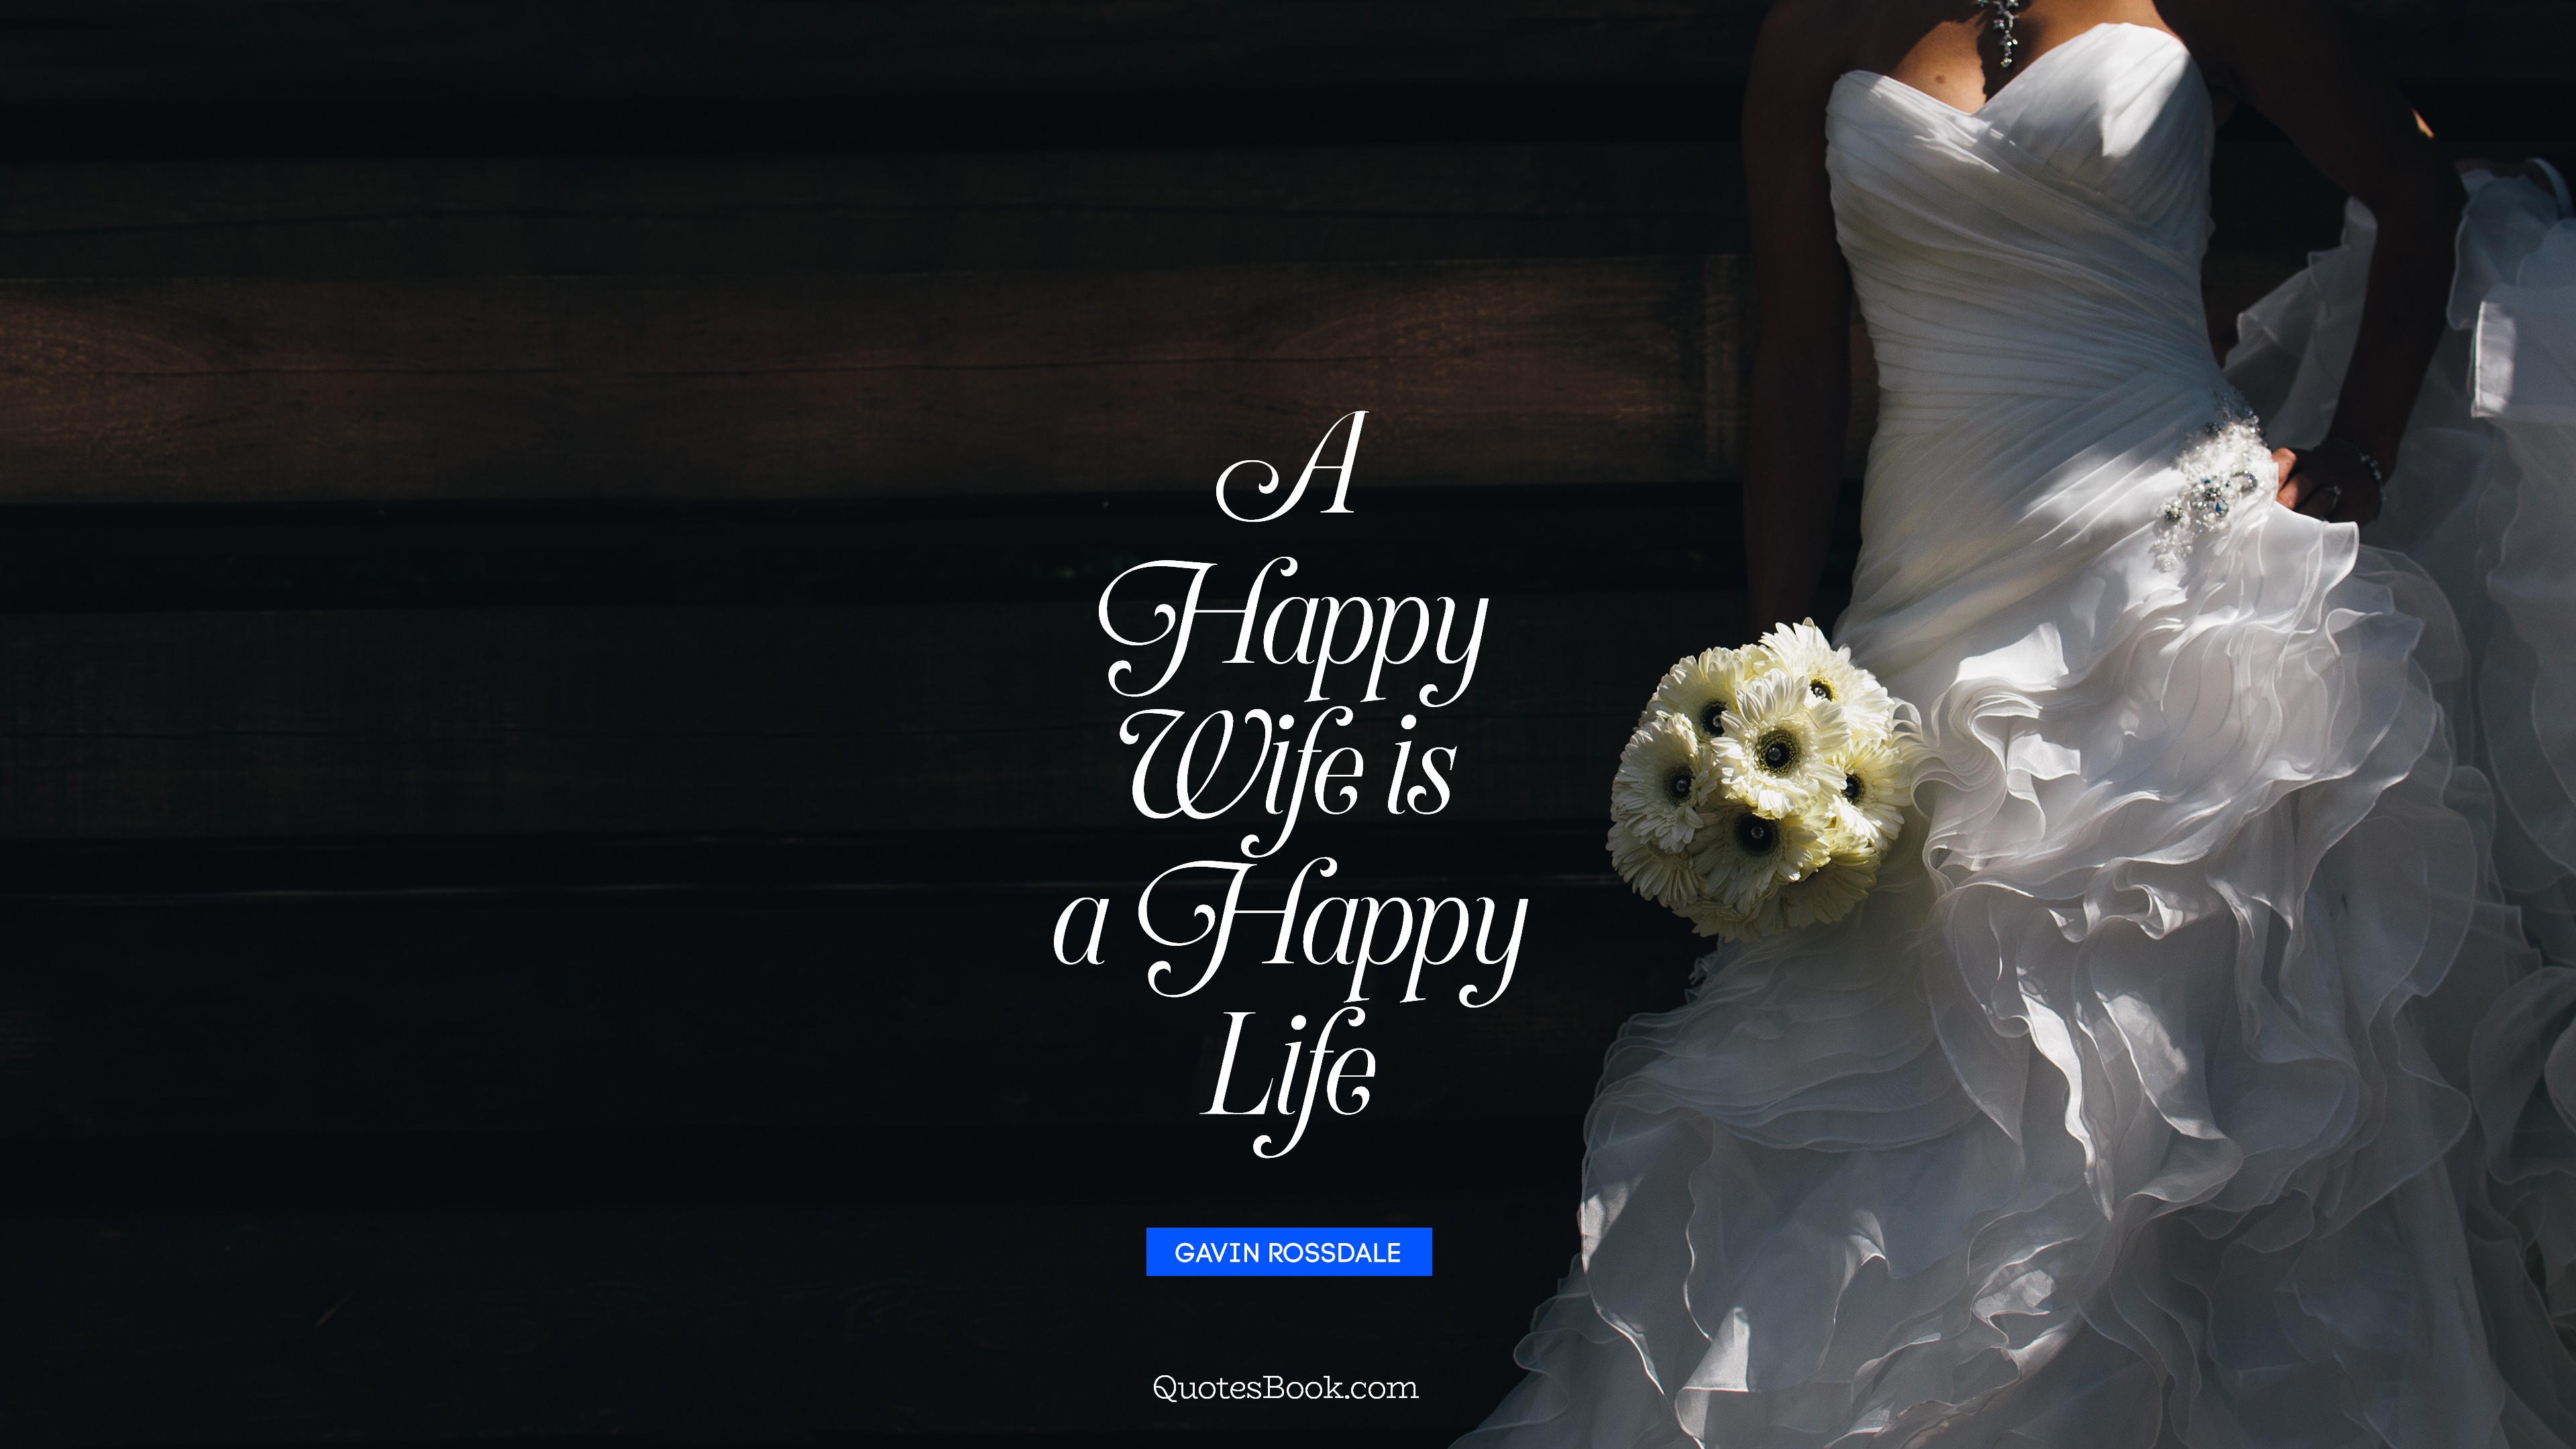 A happy wife is a happy life. - Quote by Gavin Rossdale ...